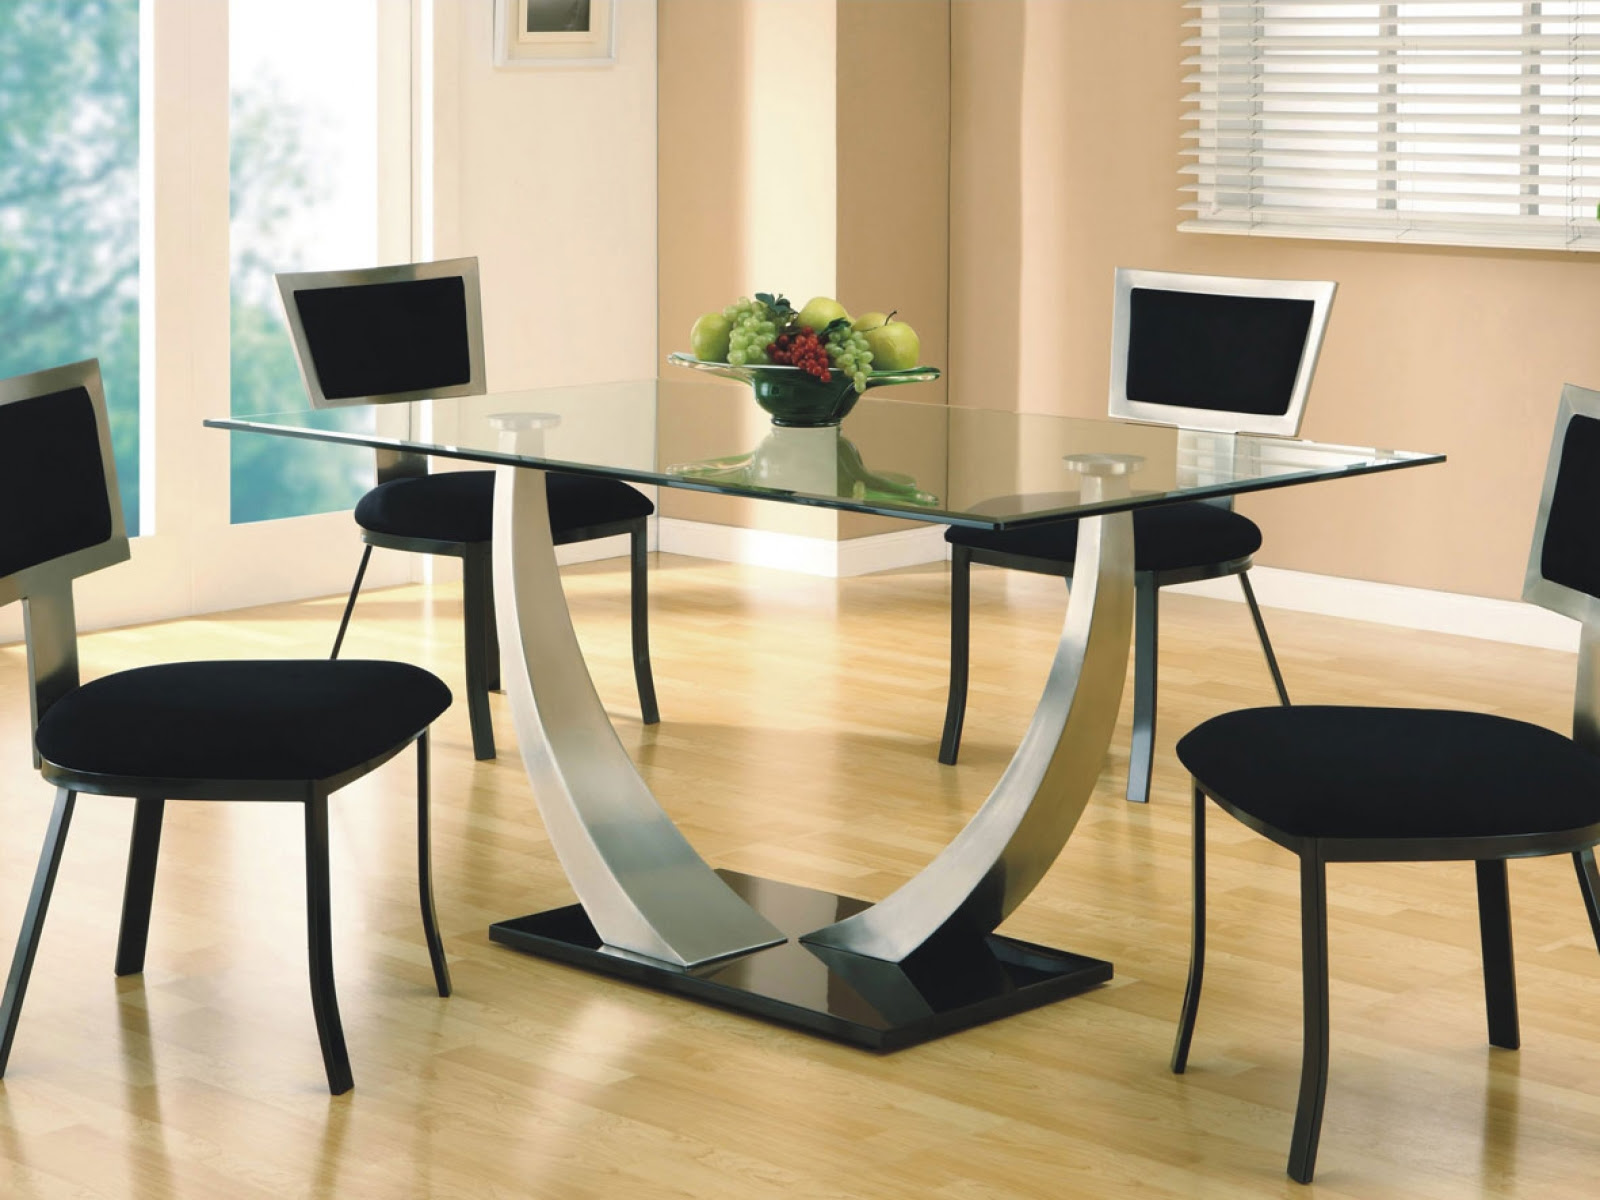 Square Dining Table Design for Your Home D\u00e9cor